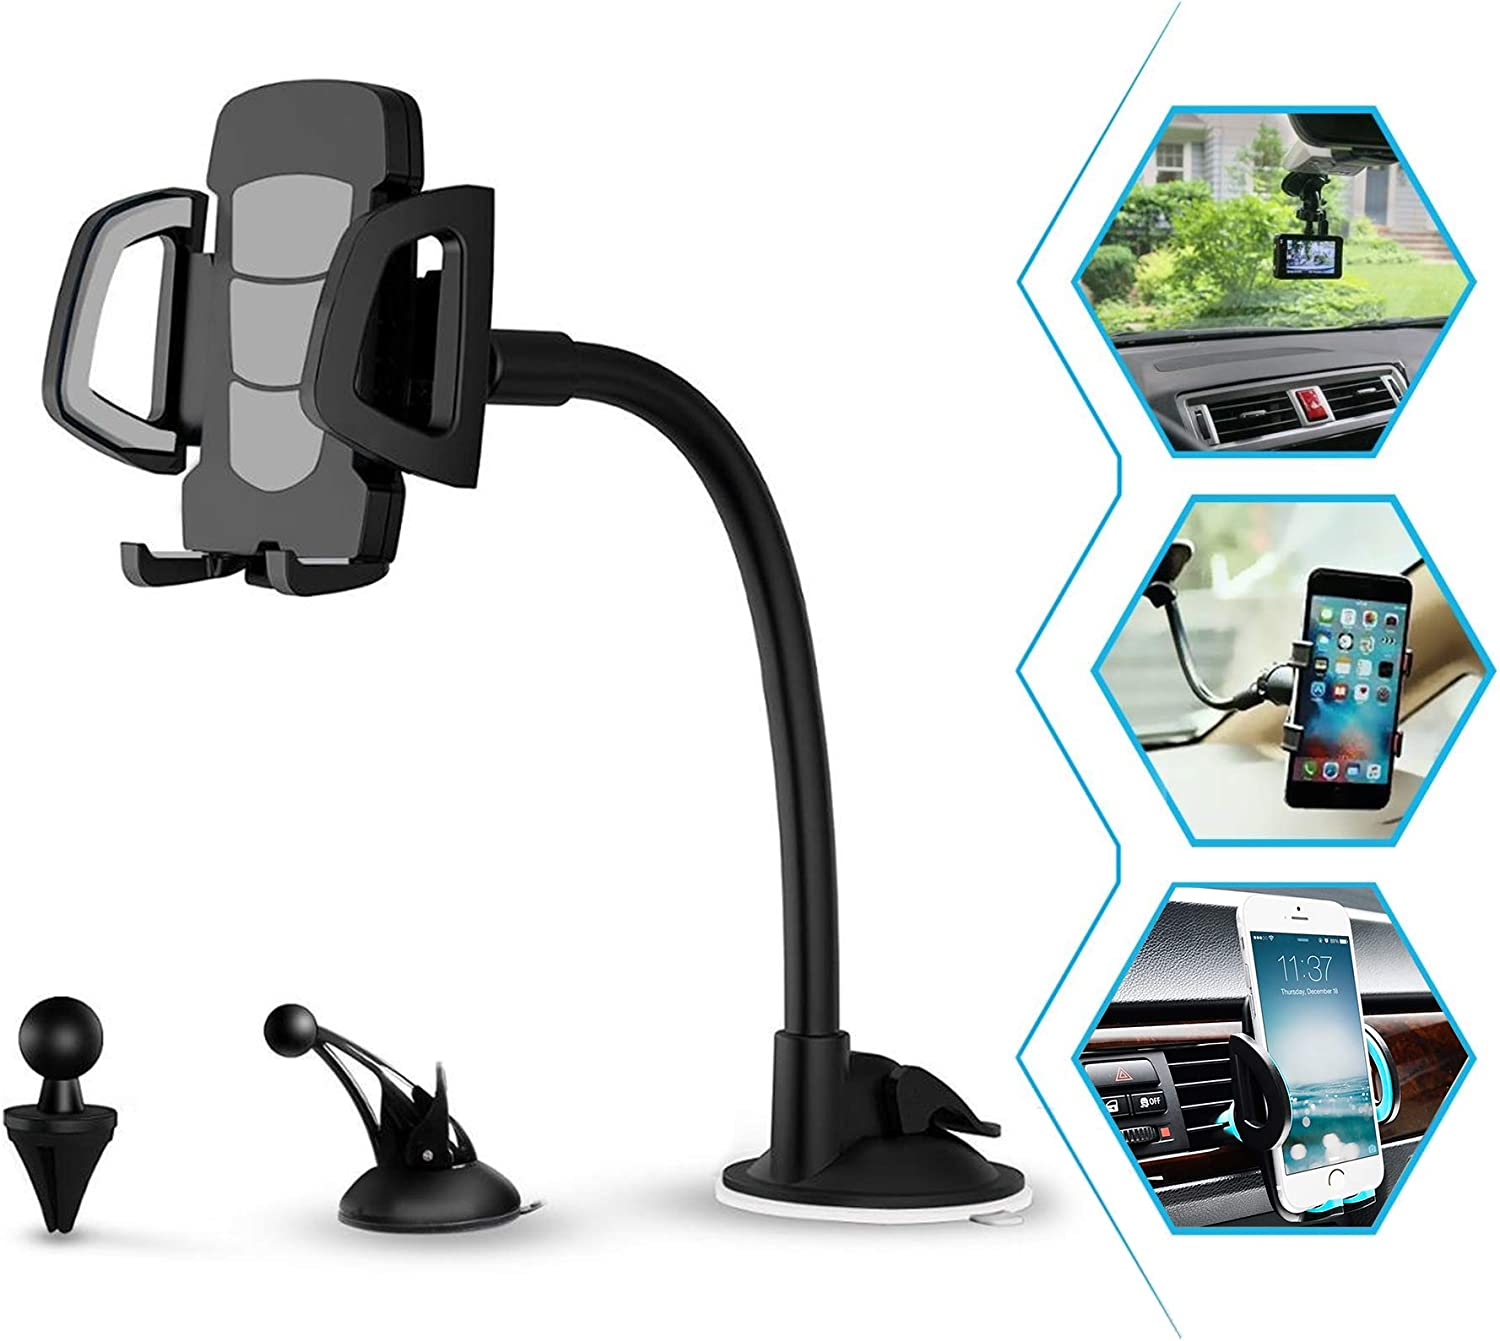 Car Phone Mount, 3 in 1 Universal Cell Phone Holder Car Air Vent Holder Dashboard Mount Windshield Mount for Samsung Galaxy S20 S10 S9 S8 LG Sony iPhone 11 Pro XS Max R X 8 Plus 7 Plus